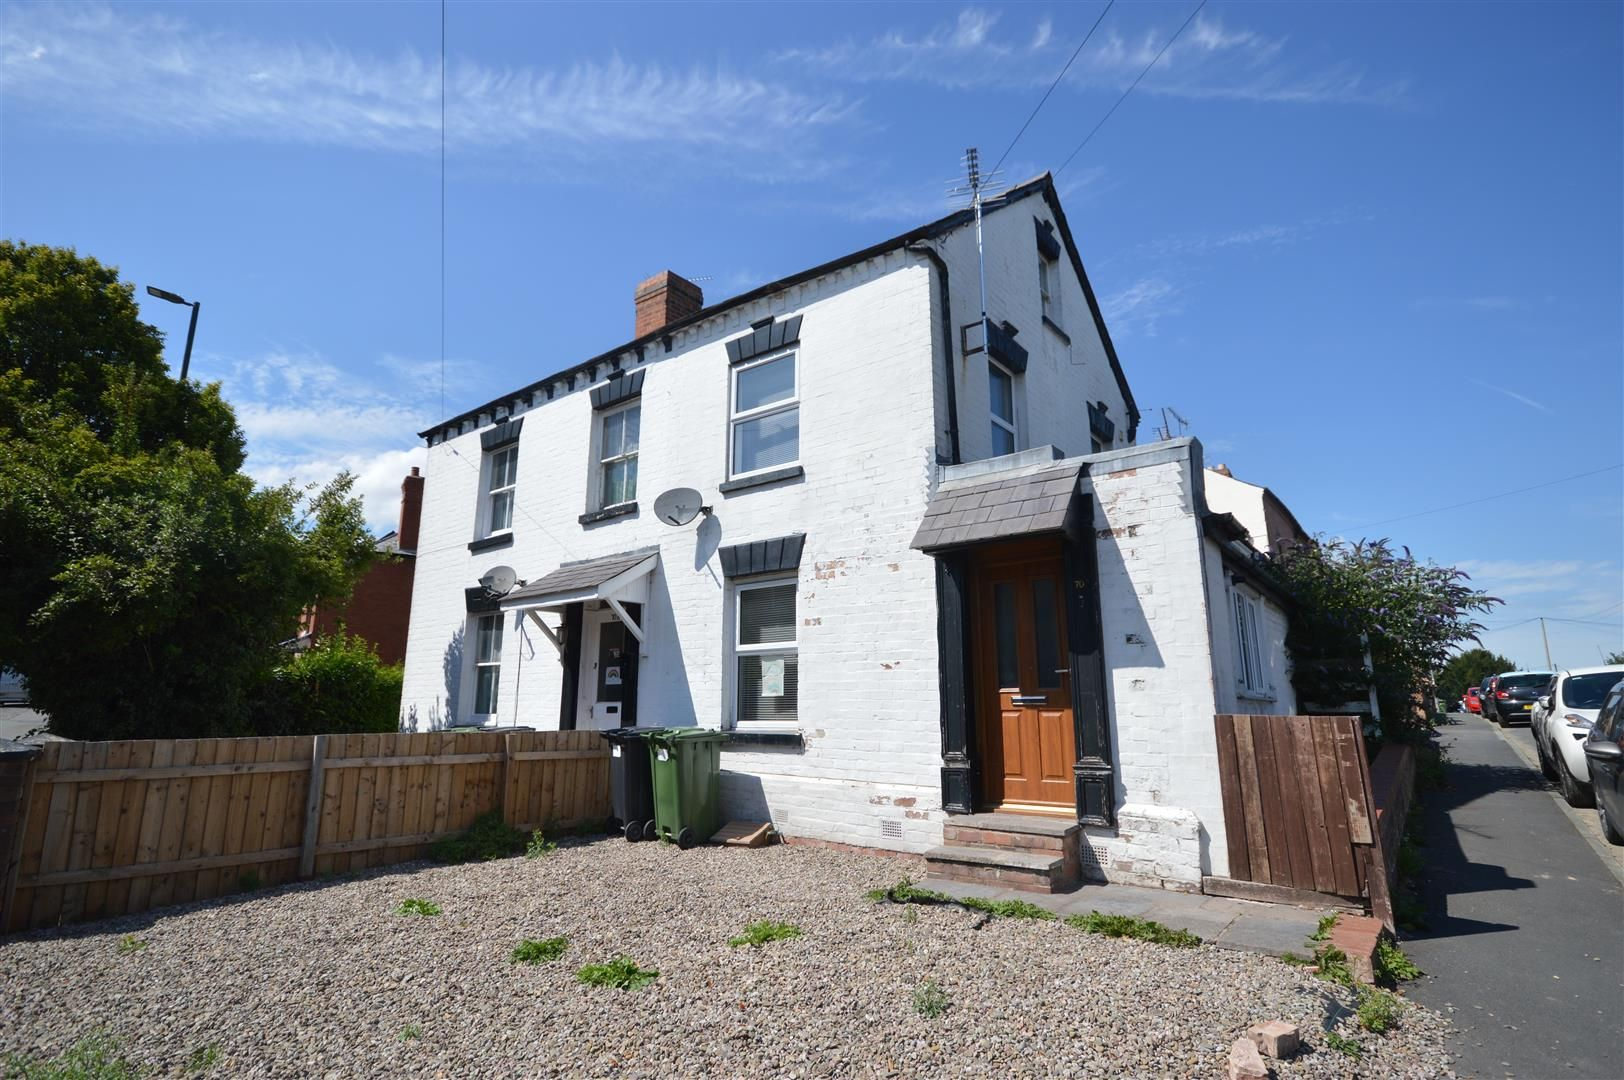 1 bed semi-detached for sale in Leominster 1